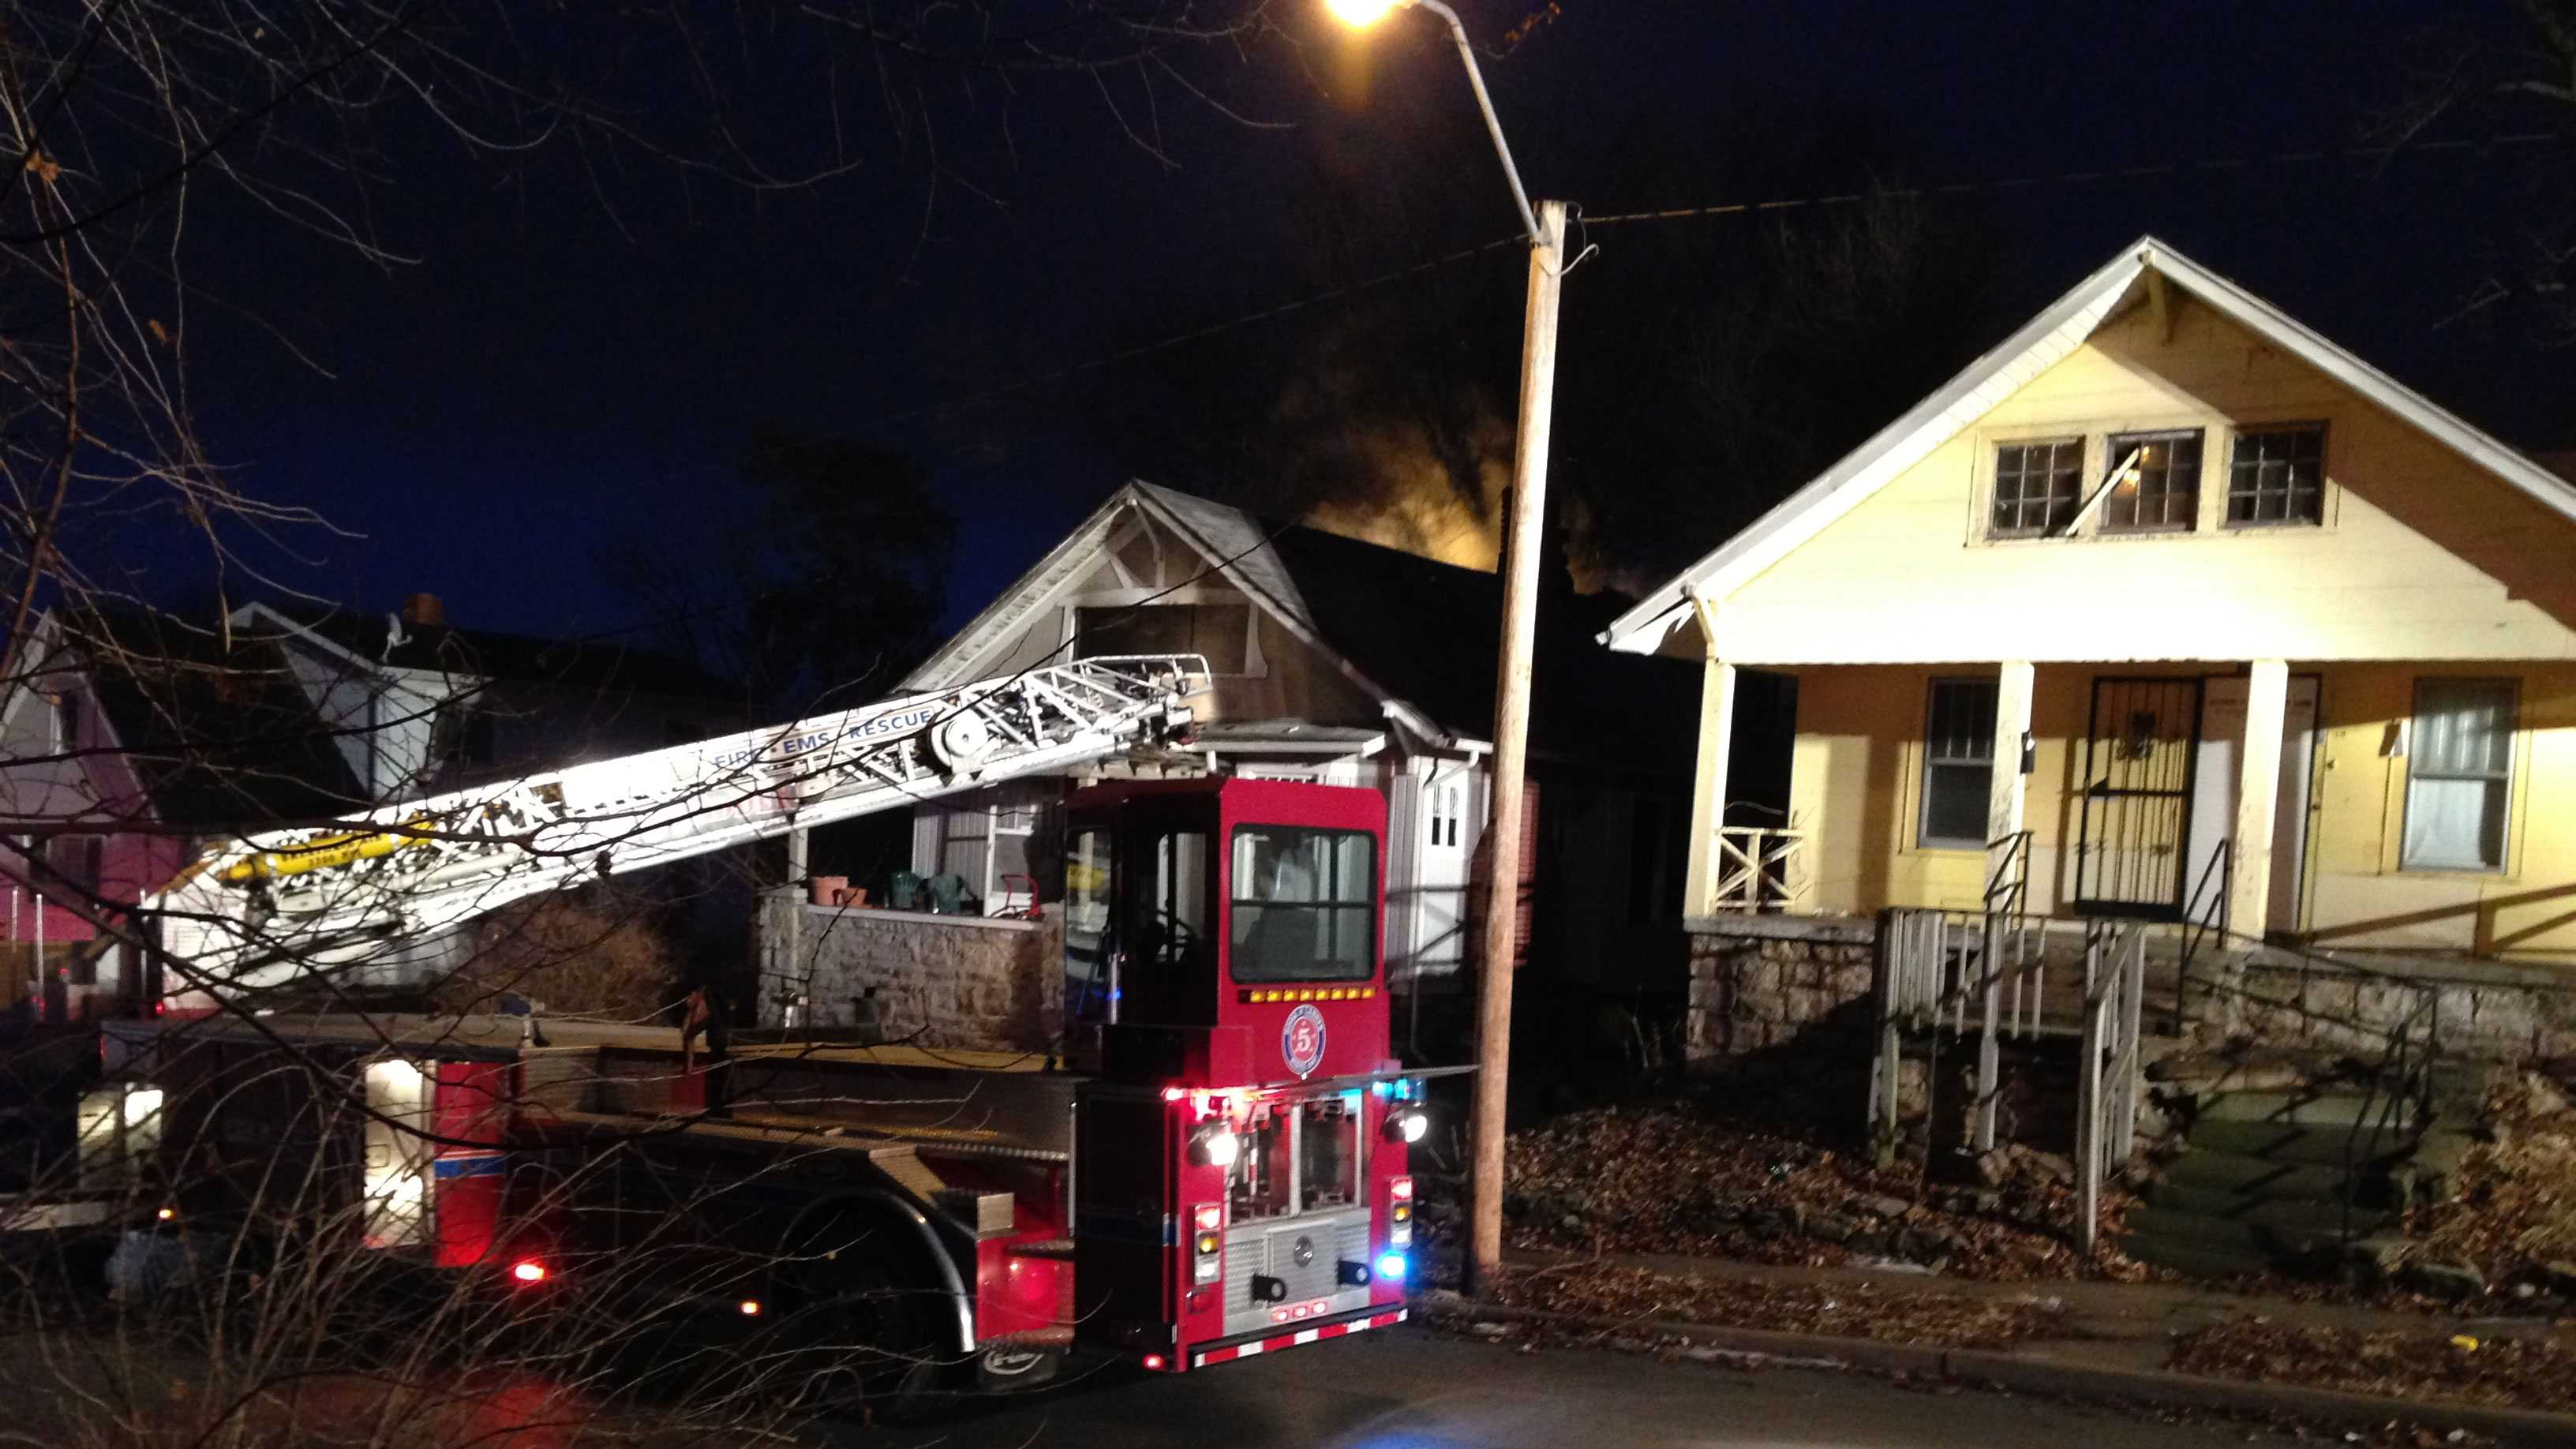 House fire 34th, Askew